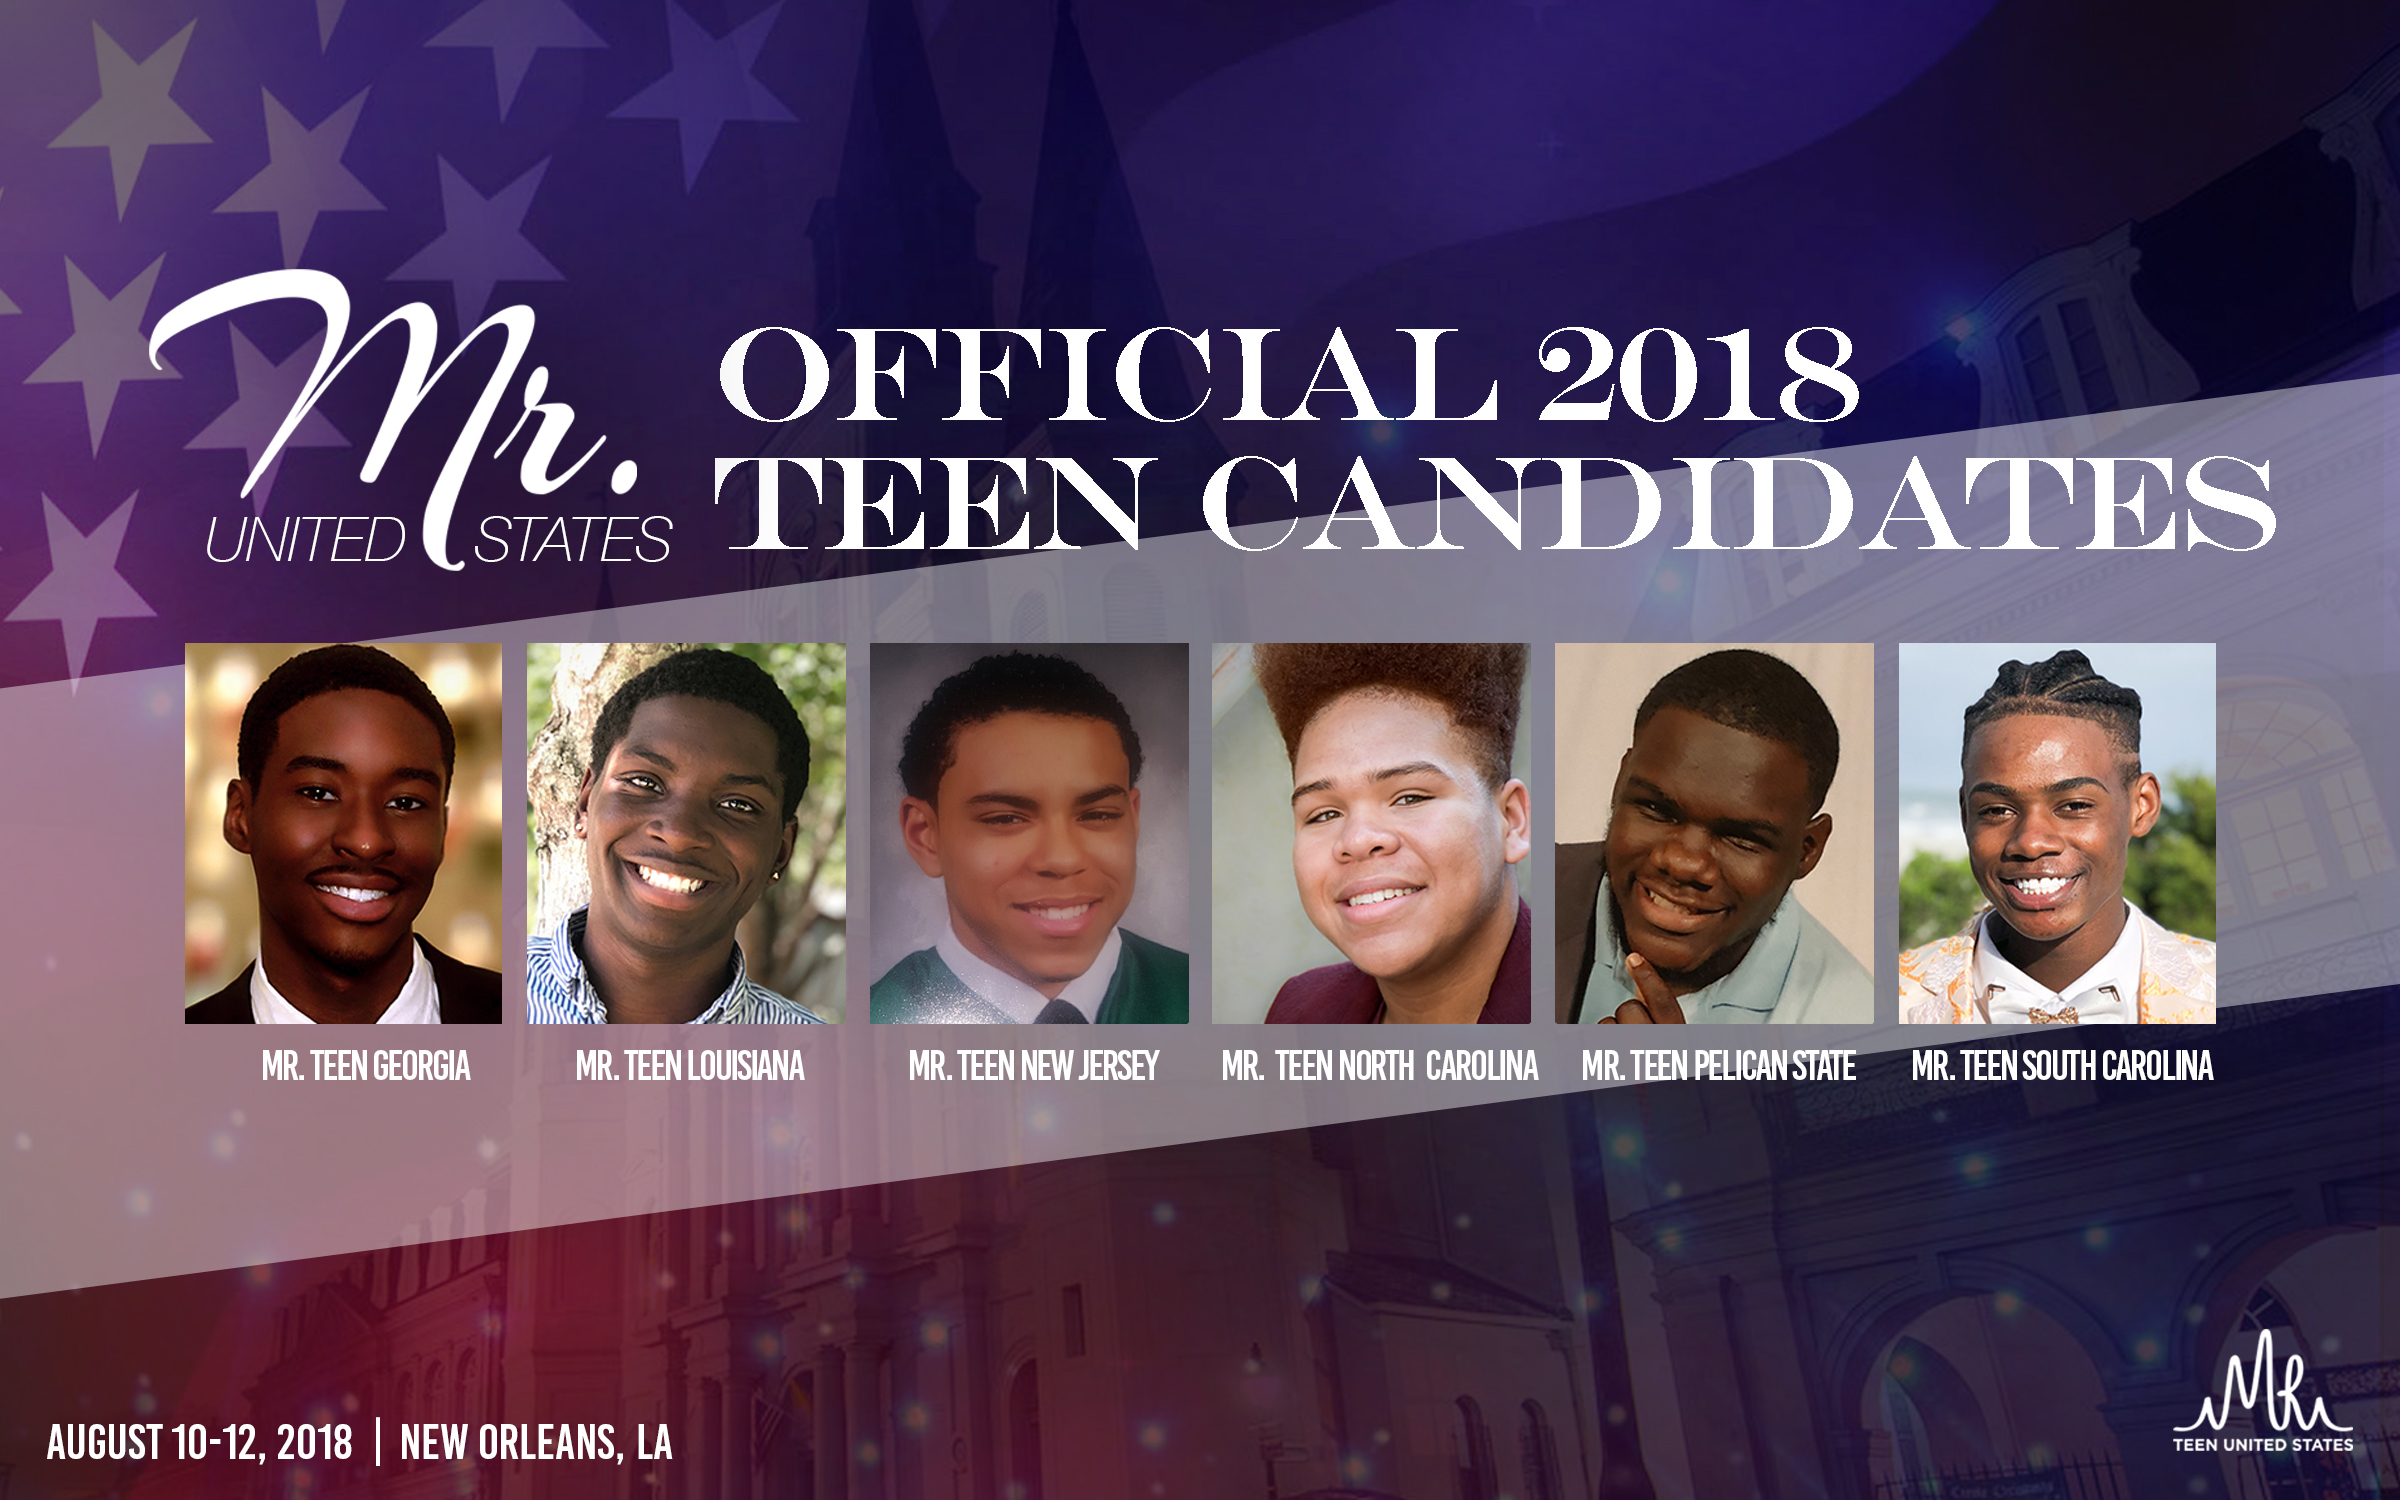 Mr. United States - Official Contestants 2018 (TEEN).jpg